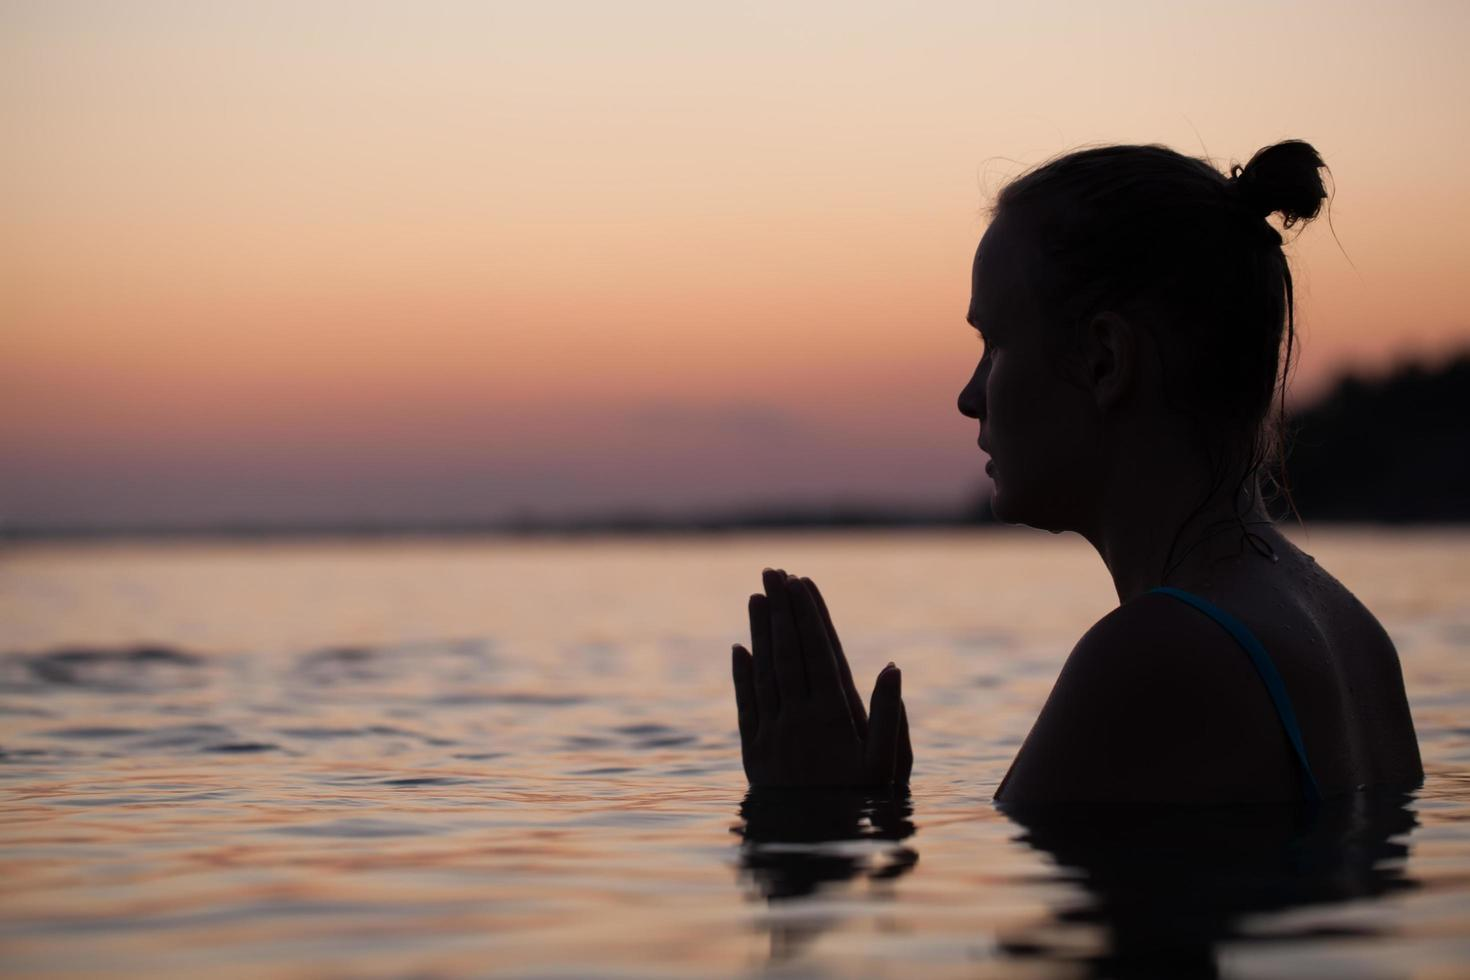 Silhouette of a person in prayer in water photo